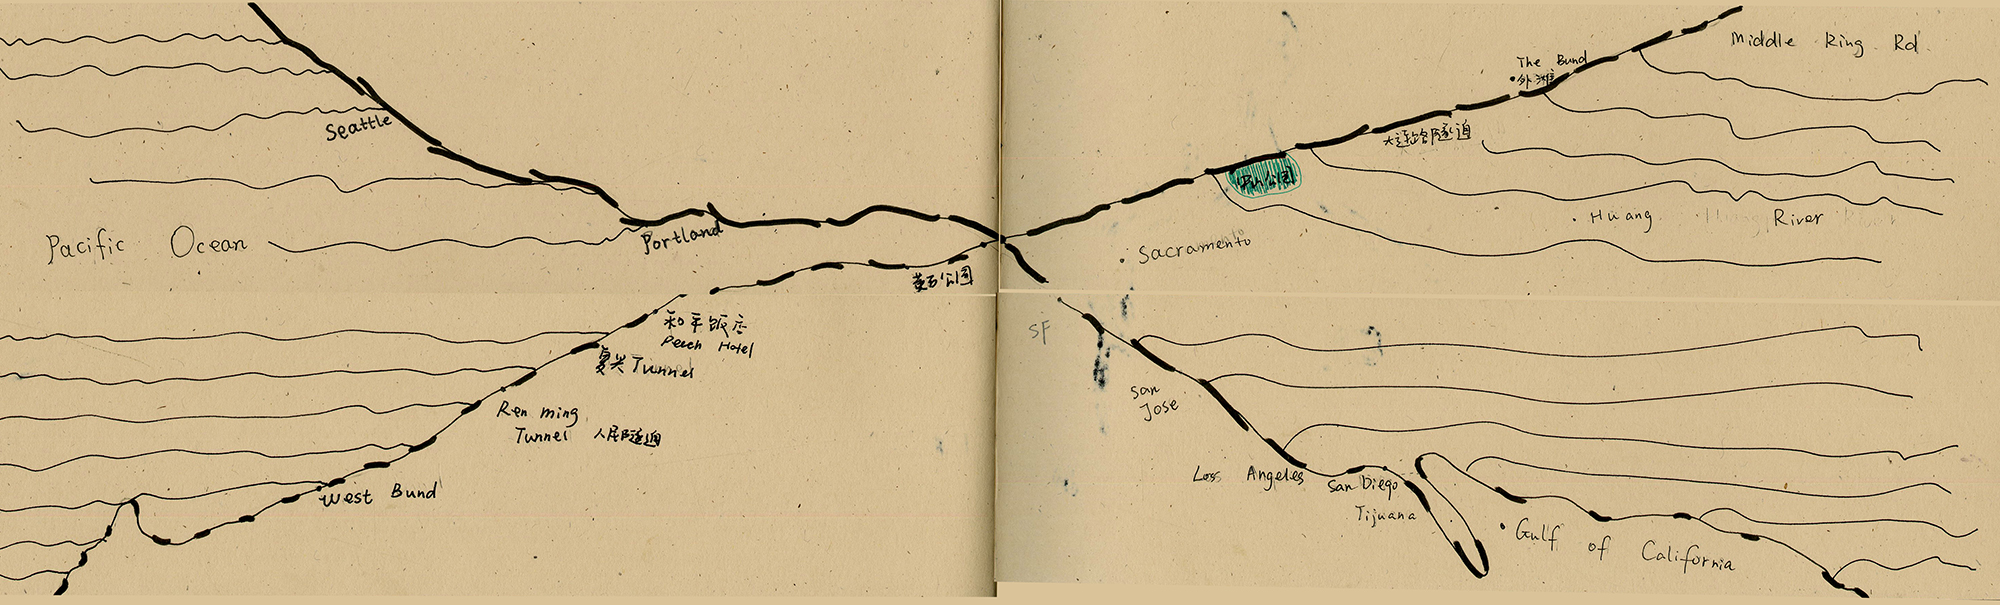 River Book I(Top), River Book II(Bottom), Page 14, The Bund of Shanghai Connects with Highway No.1, California